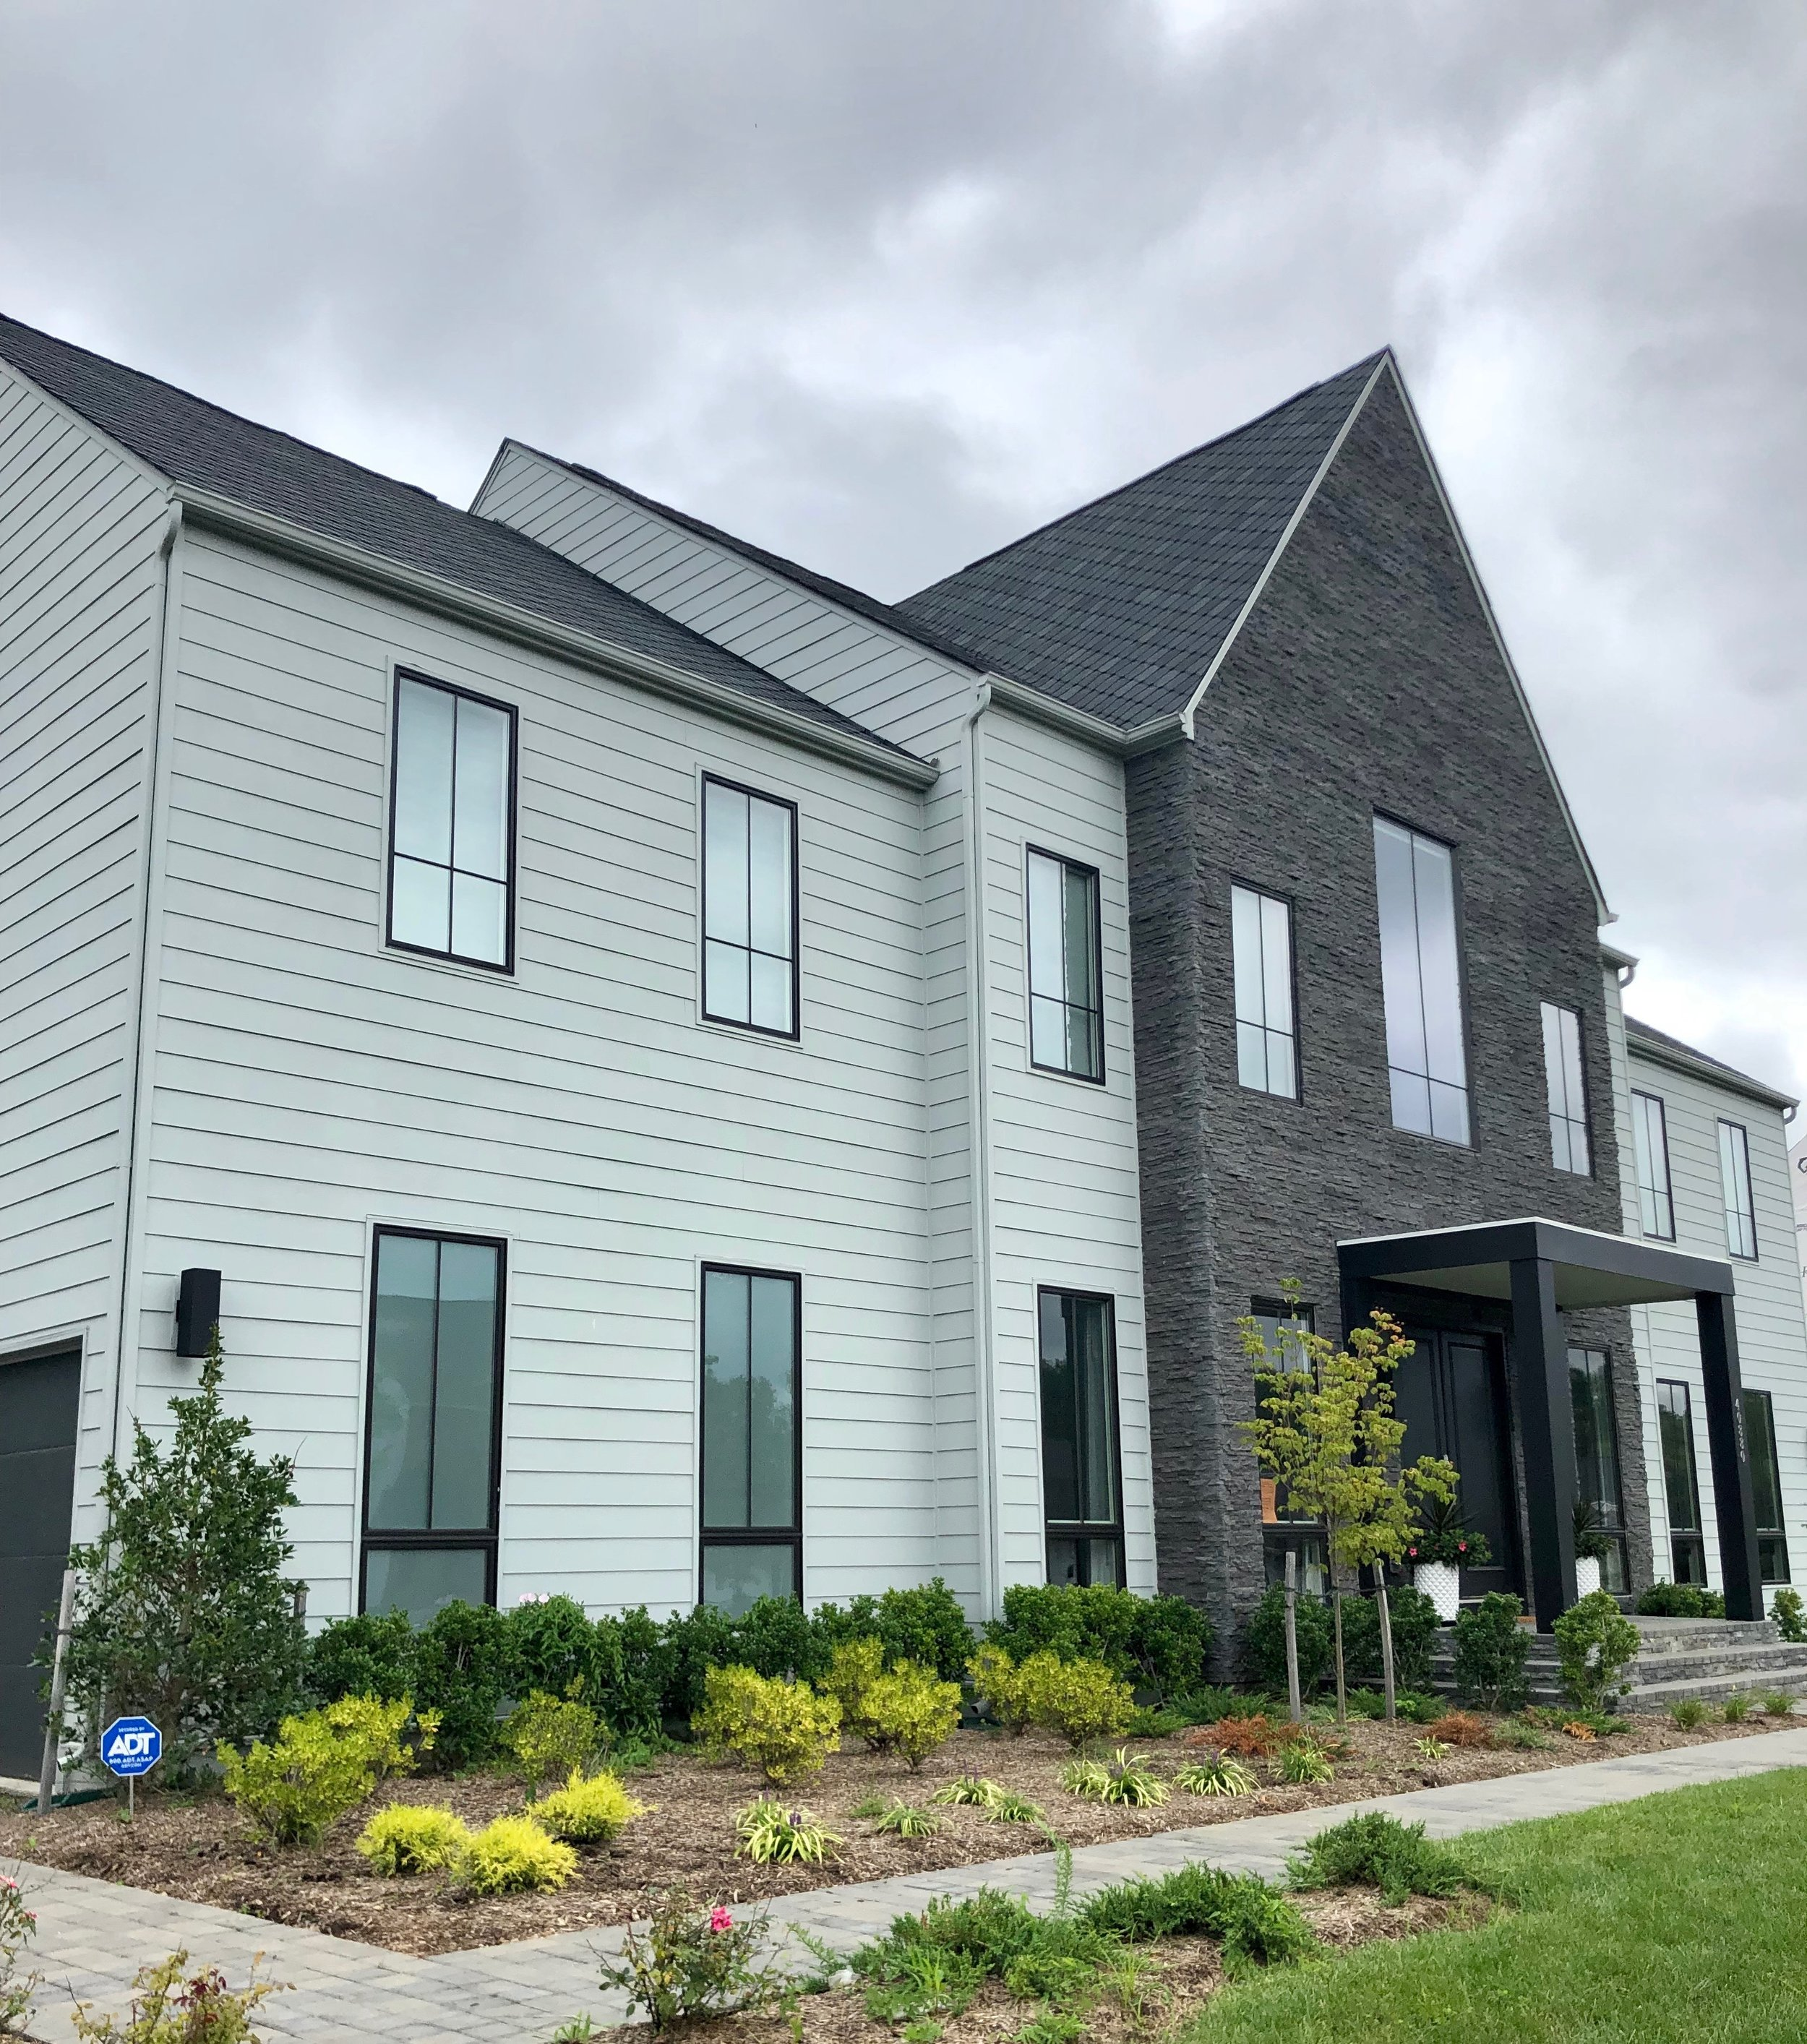 - From the day I laid eyes on this custom new build exterior I was smitten! Once I entered the space, I was enamored even more and set to work on a design that would highlight the architecture, clean lines and soaring ceilings but also leave this young family with a cozy place to kick back.